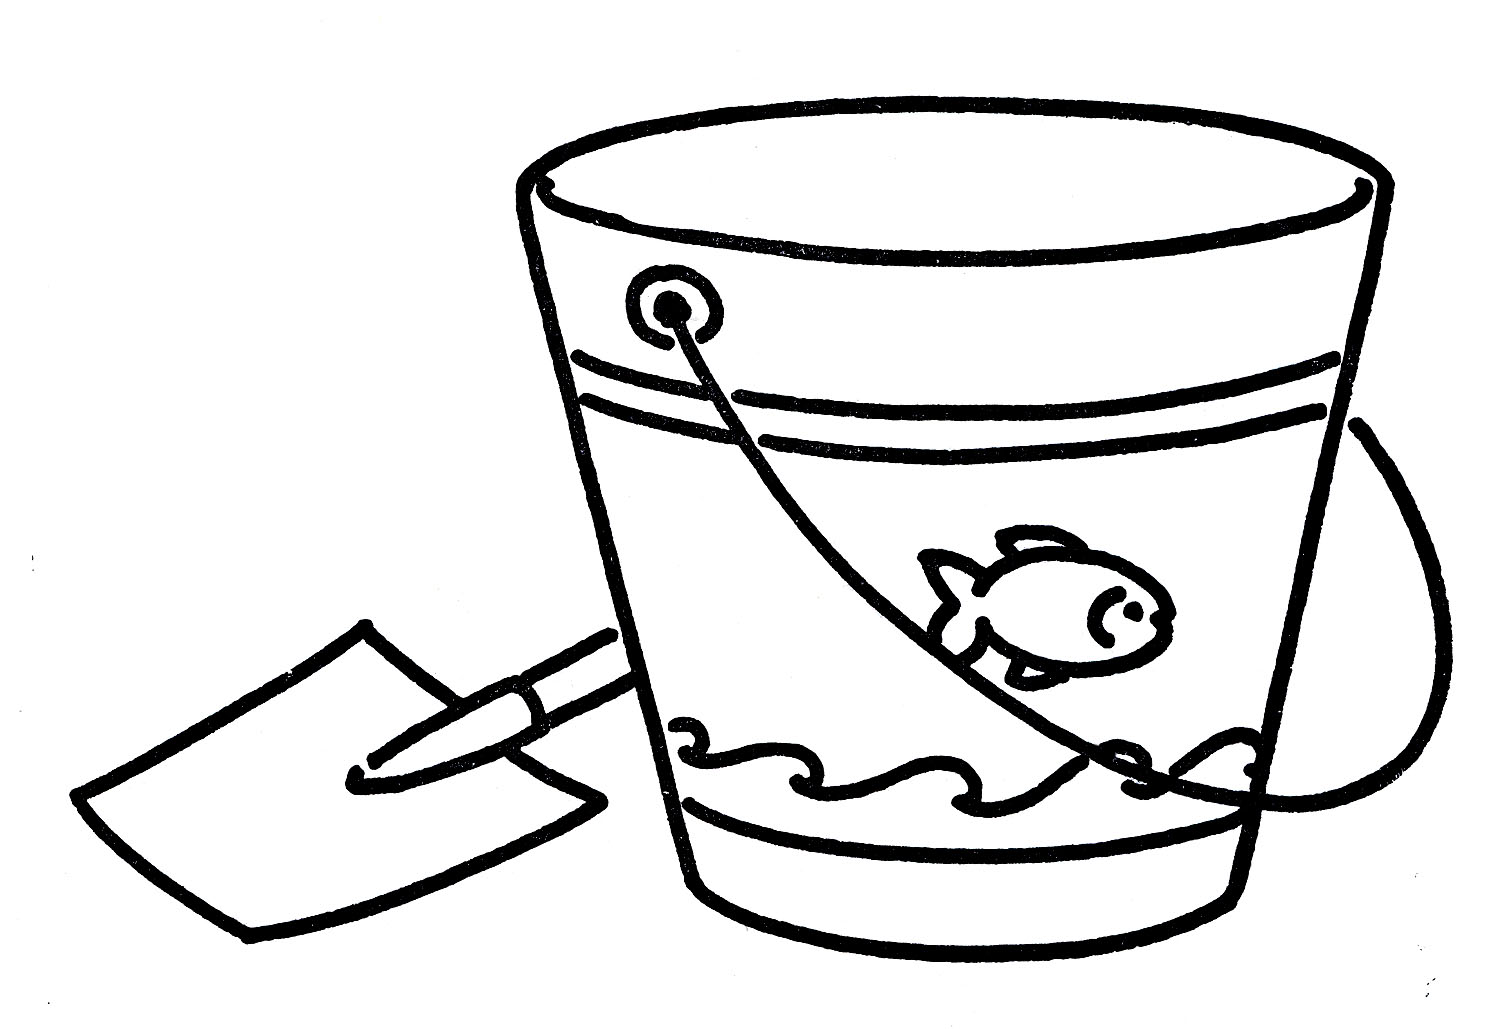 Pail drawing at getdrawings. Bucket clipart draw